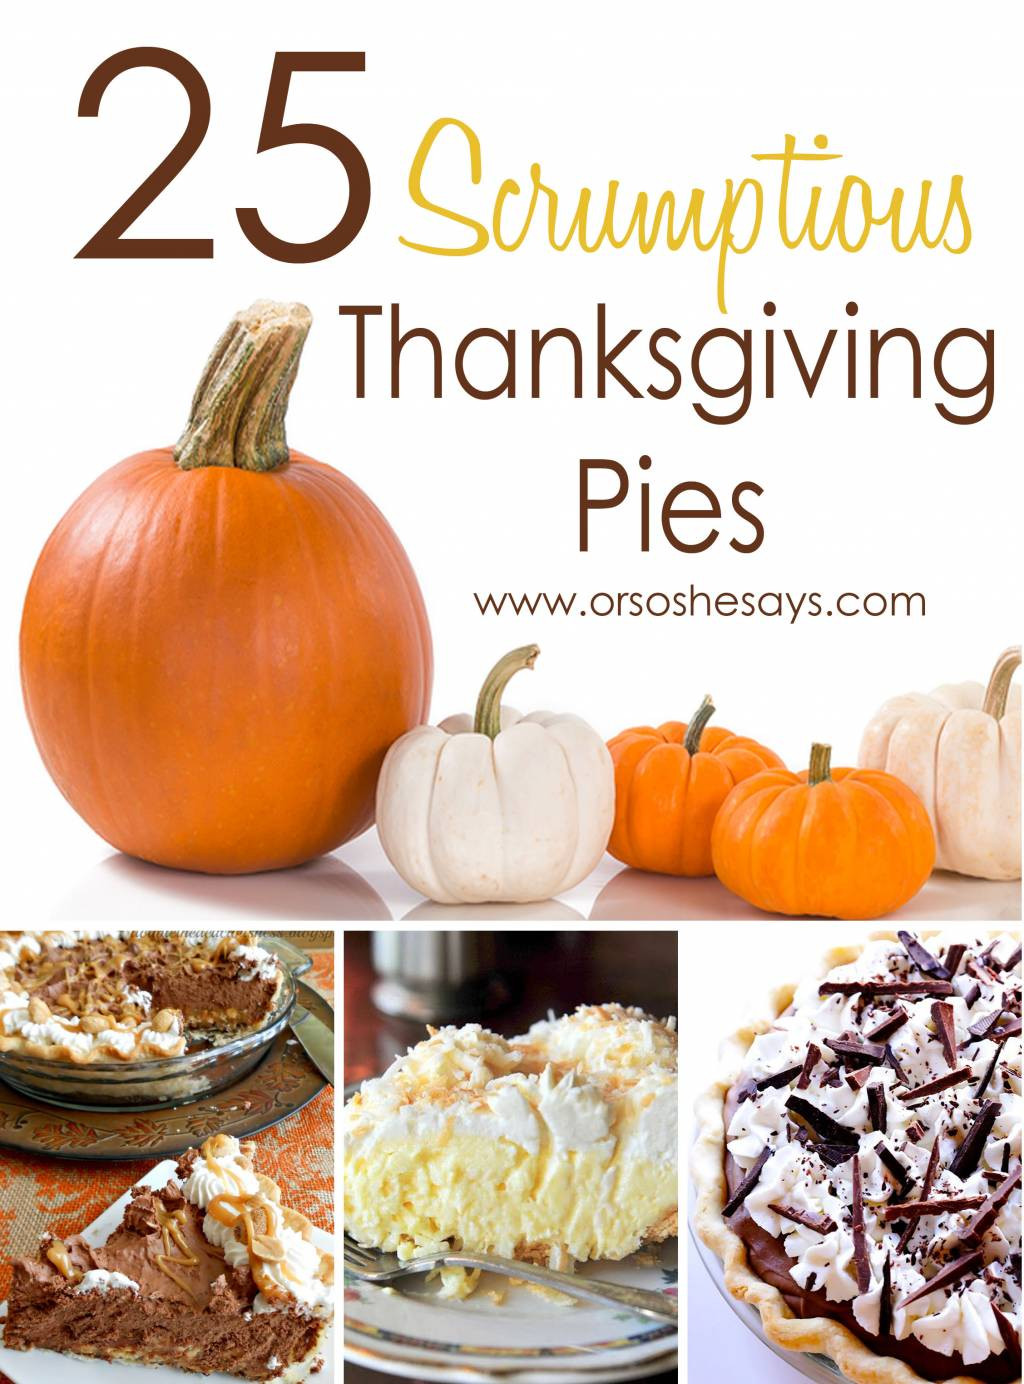 Pies For Thanksgiving  25 Scrumptious Thanksgiving Pies she Mariah so she